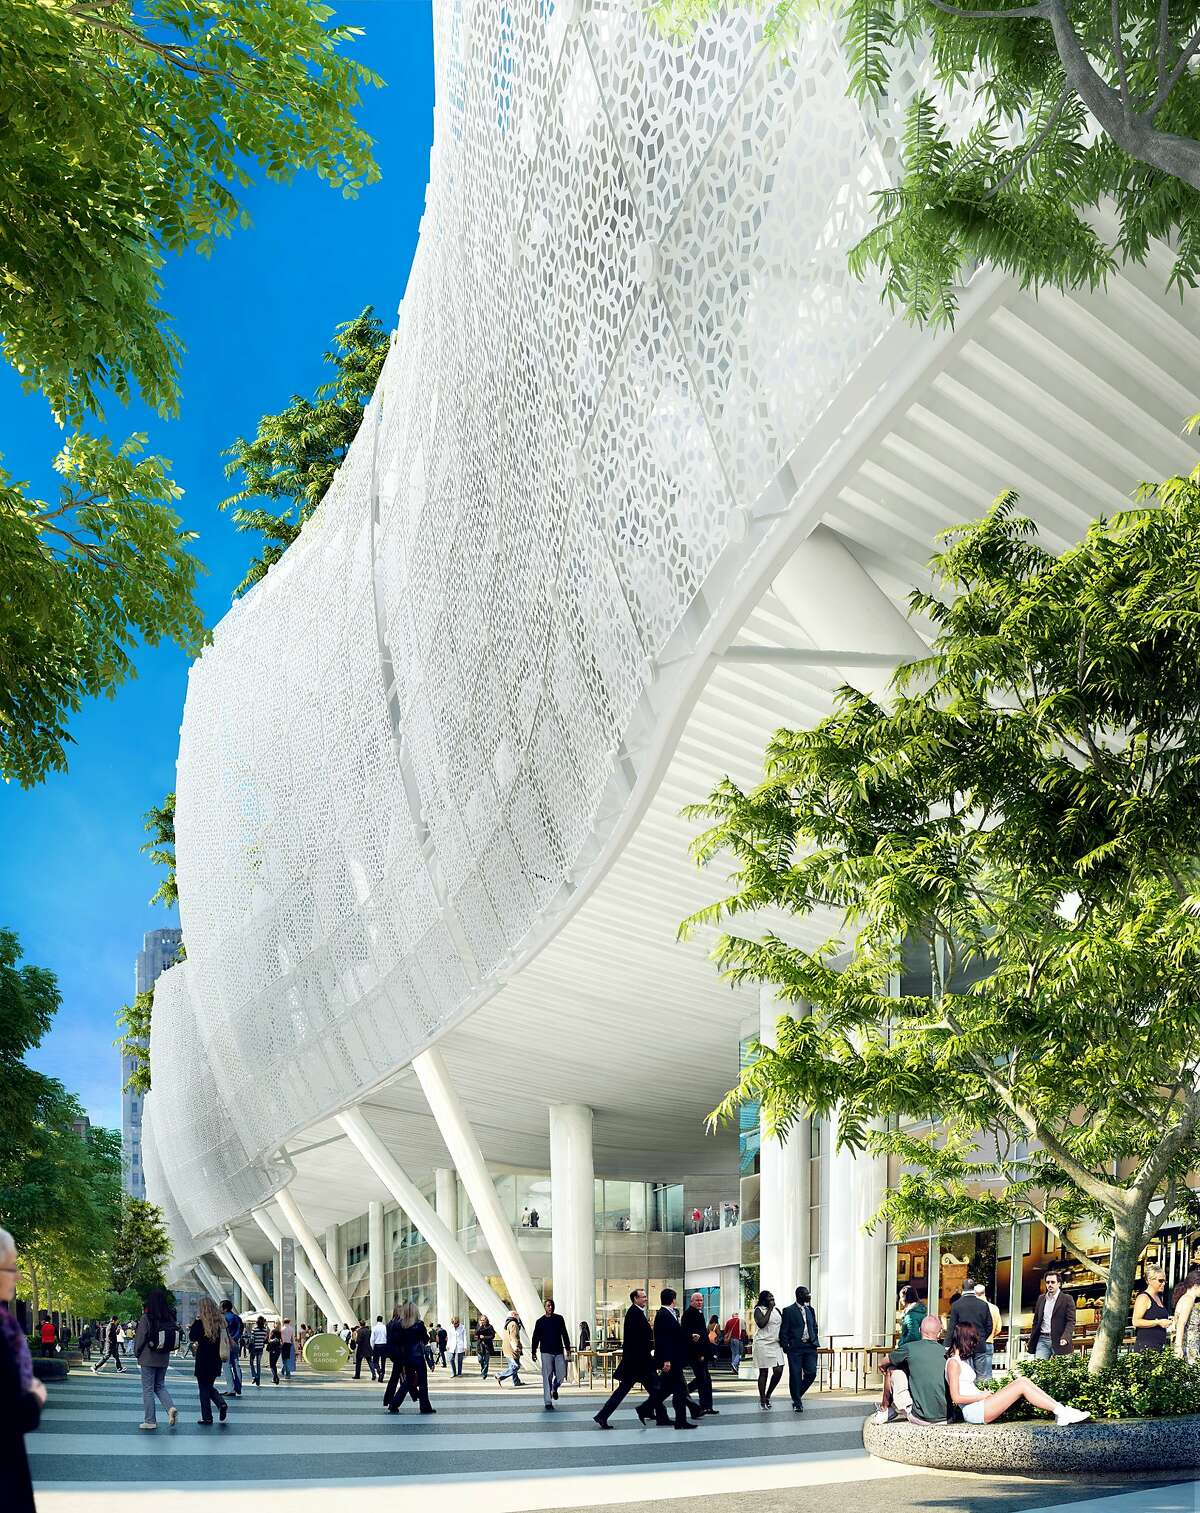 The final design -- as of July, 2015 -- of the exterior of the Transbay Transit Center, set to open in 2017.